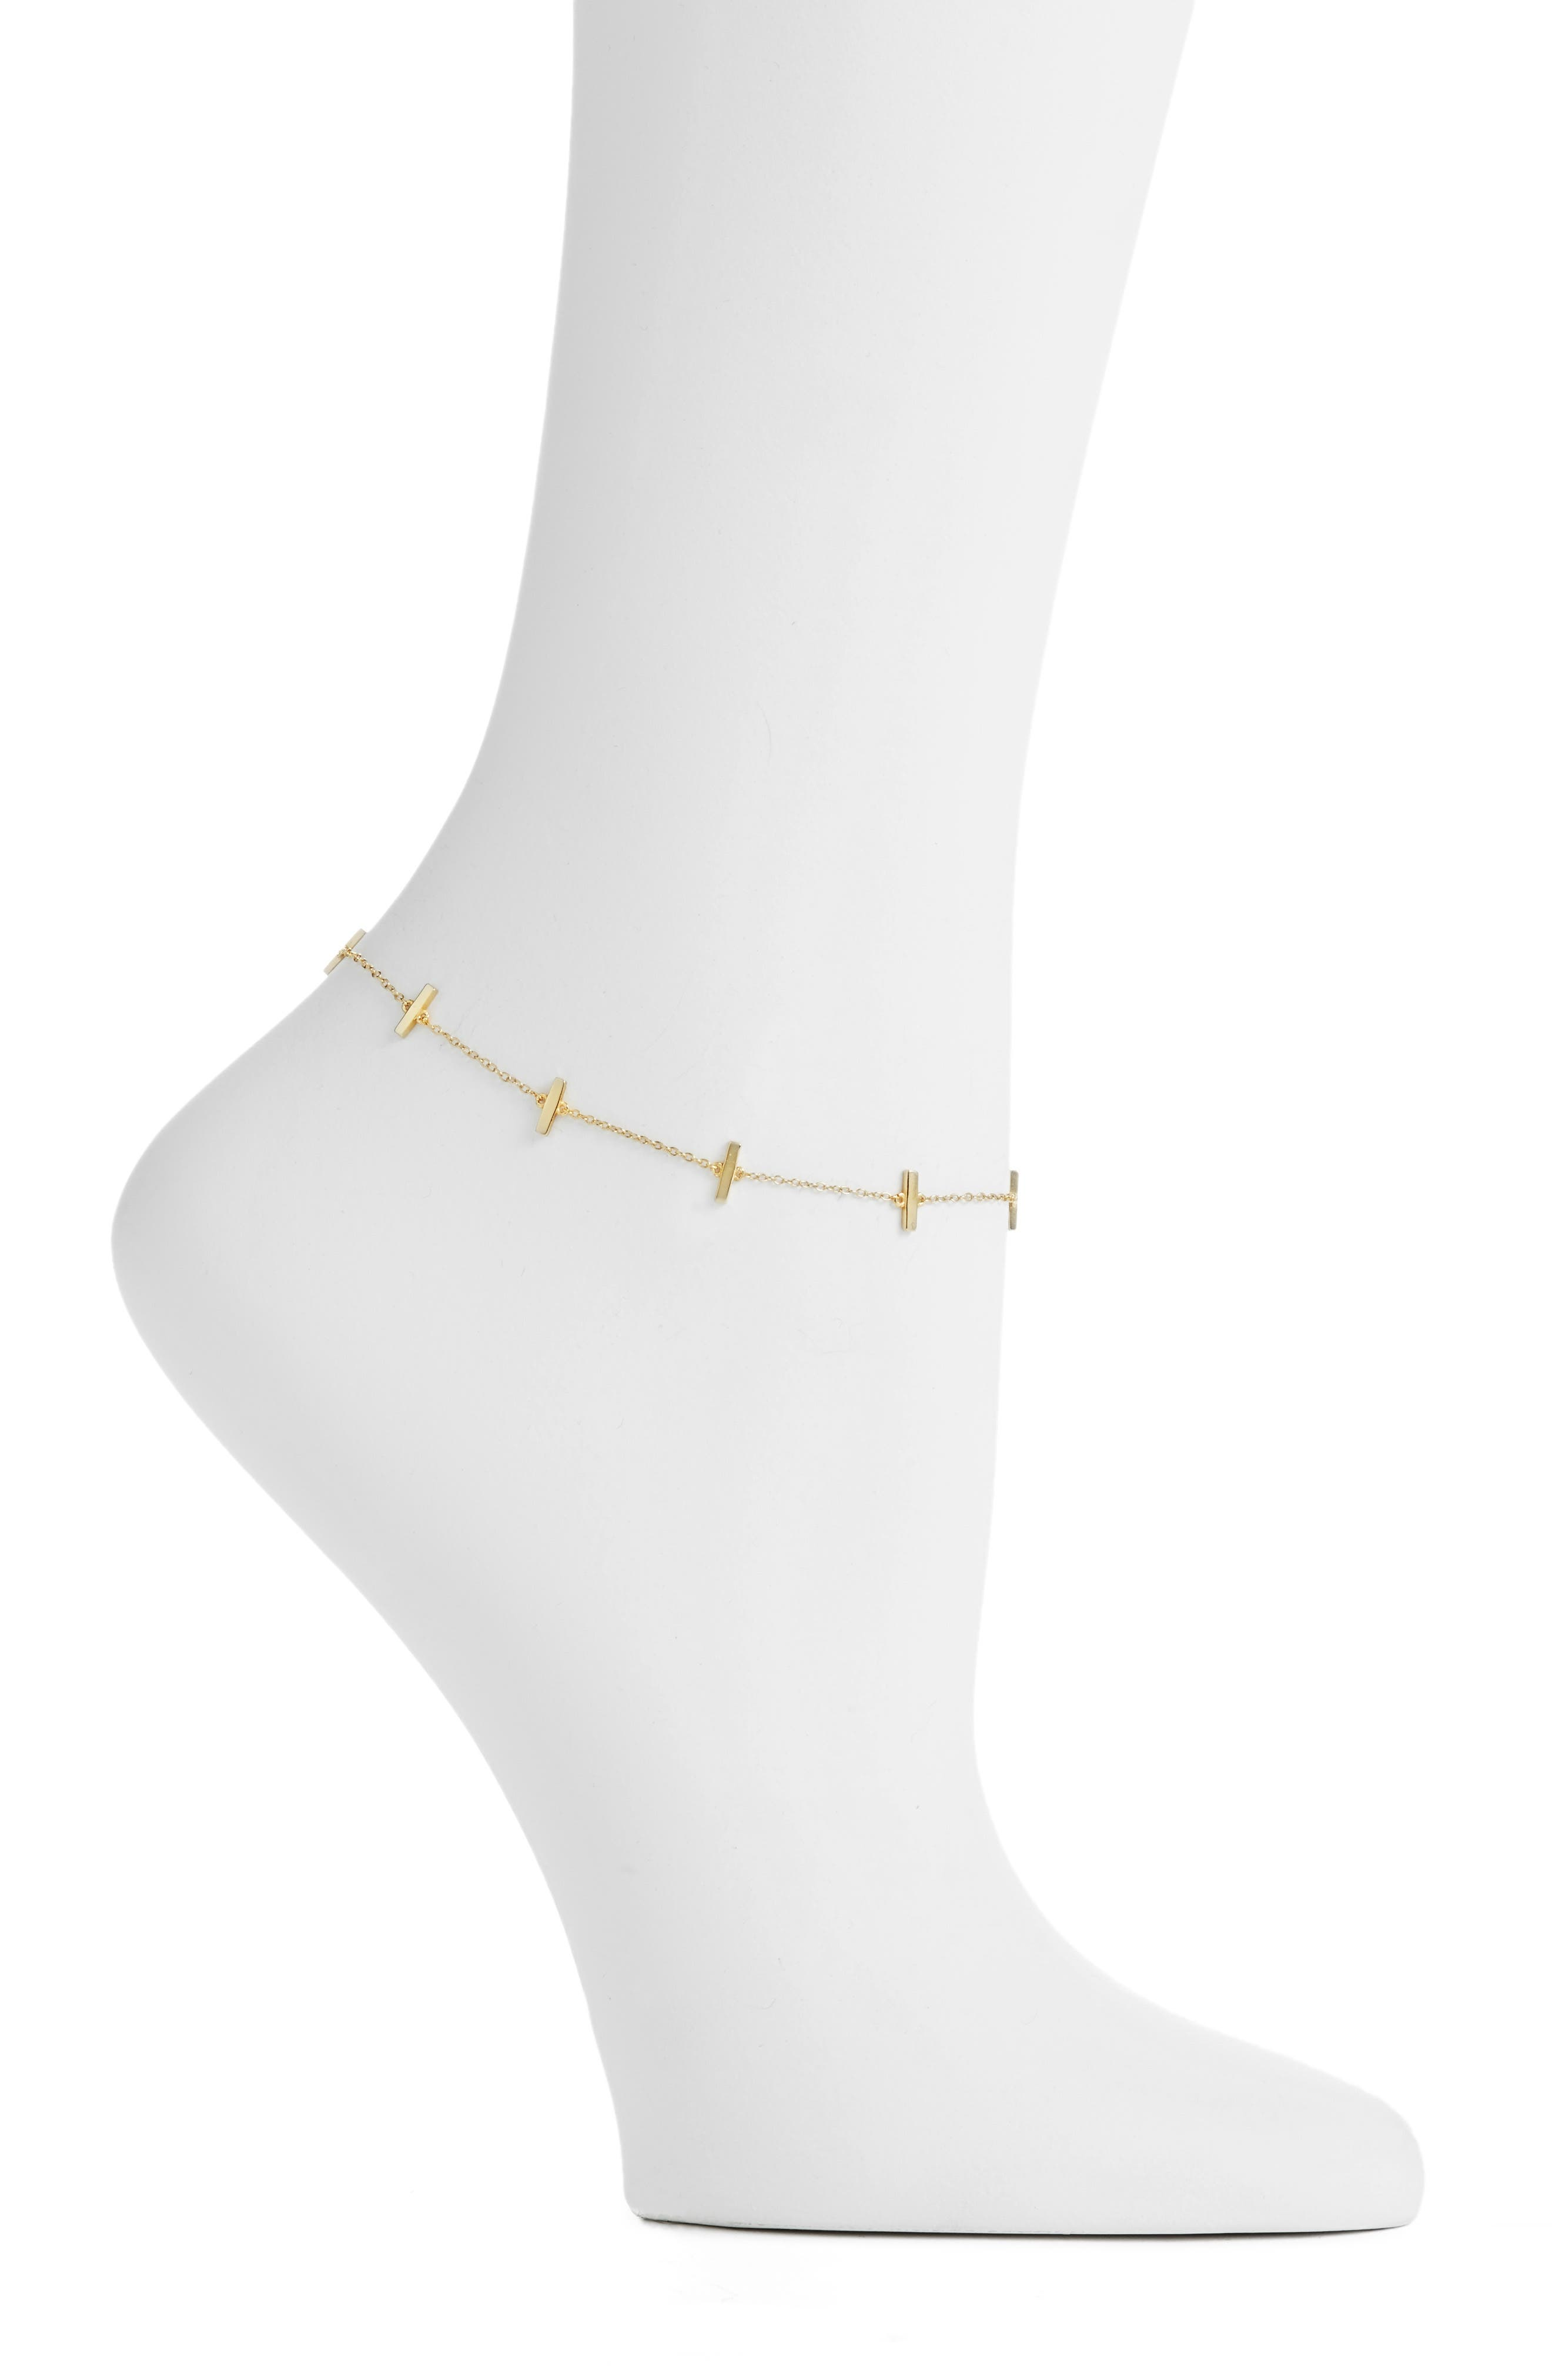 Main Image - Argento Vivo Bar Station Anklet